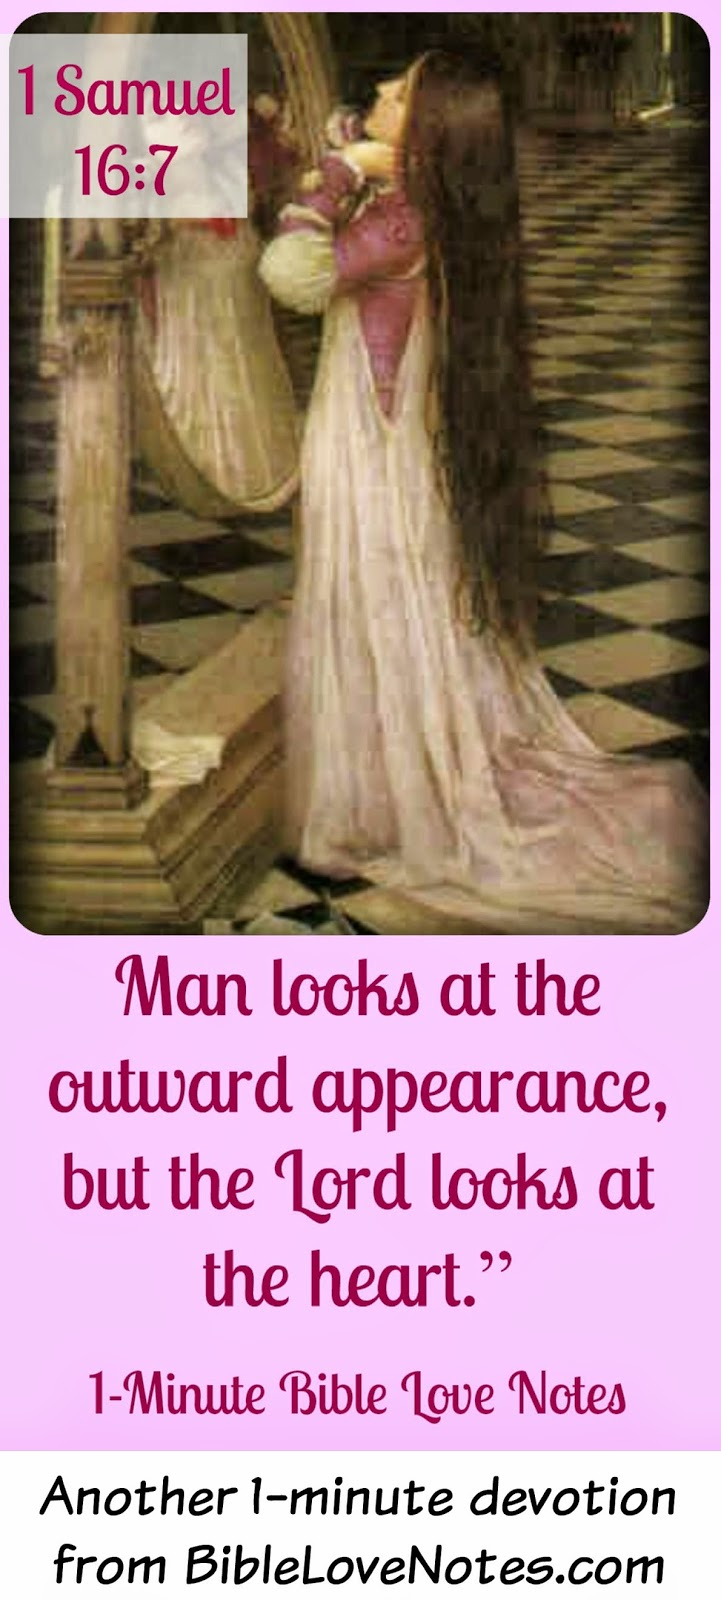 1 Samuel 16:7; God looks at the heart, Man looks at outward appearance